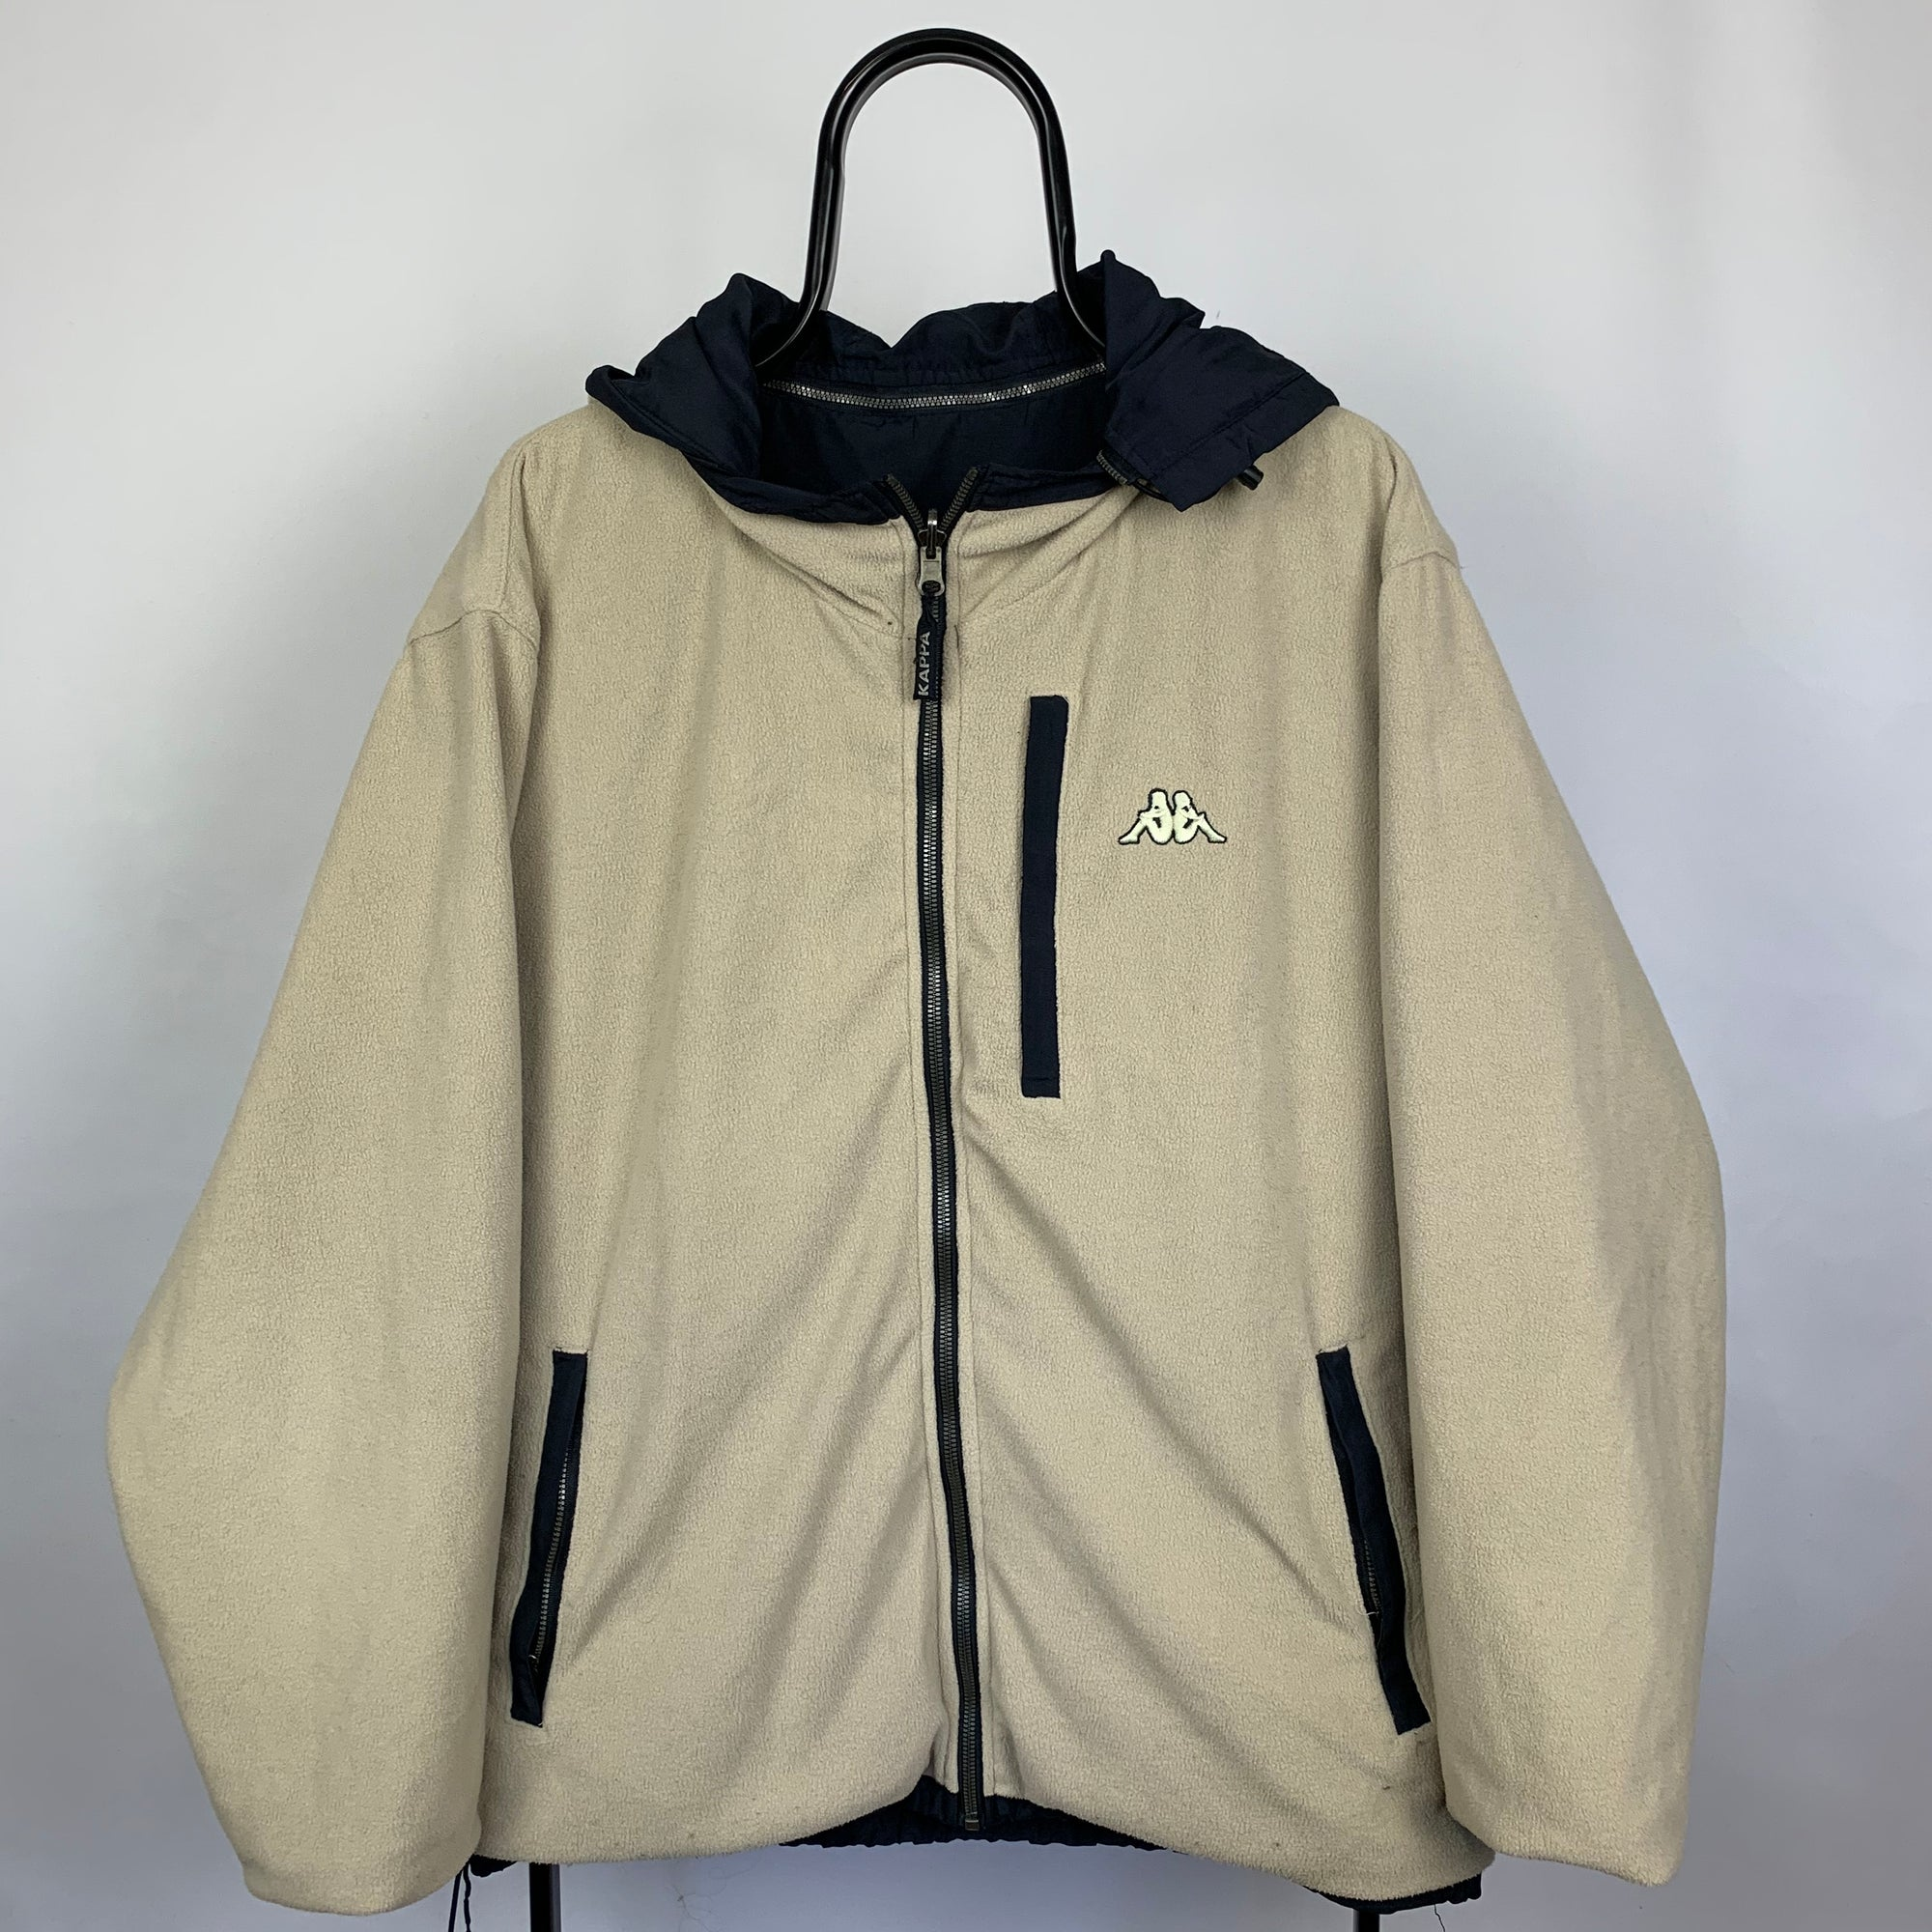 Kappa Reversible Jacket - Men's Large/Women's XL